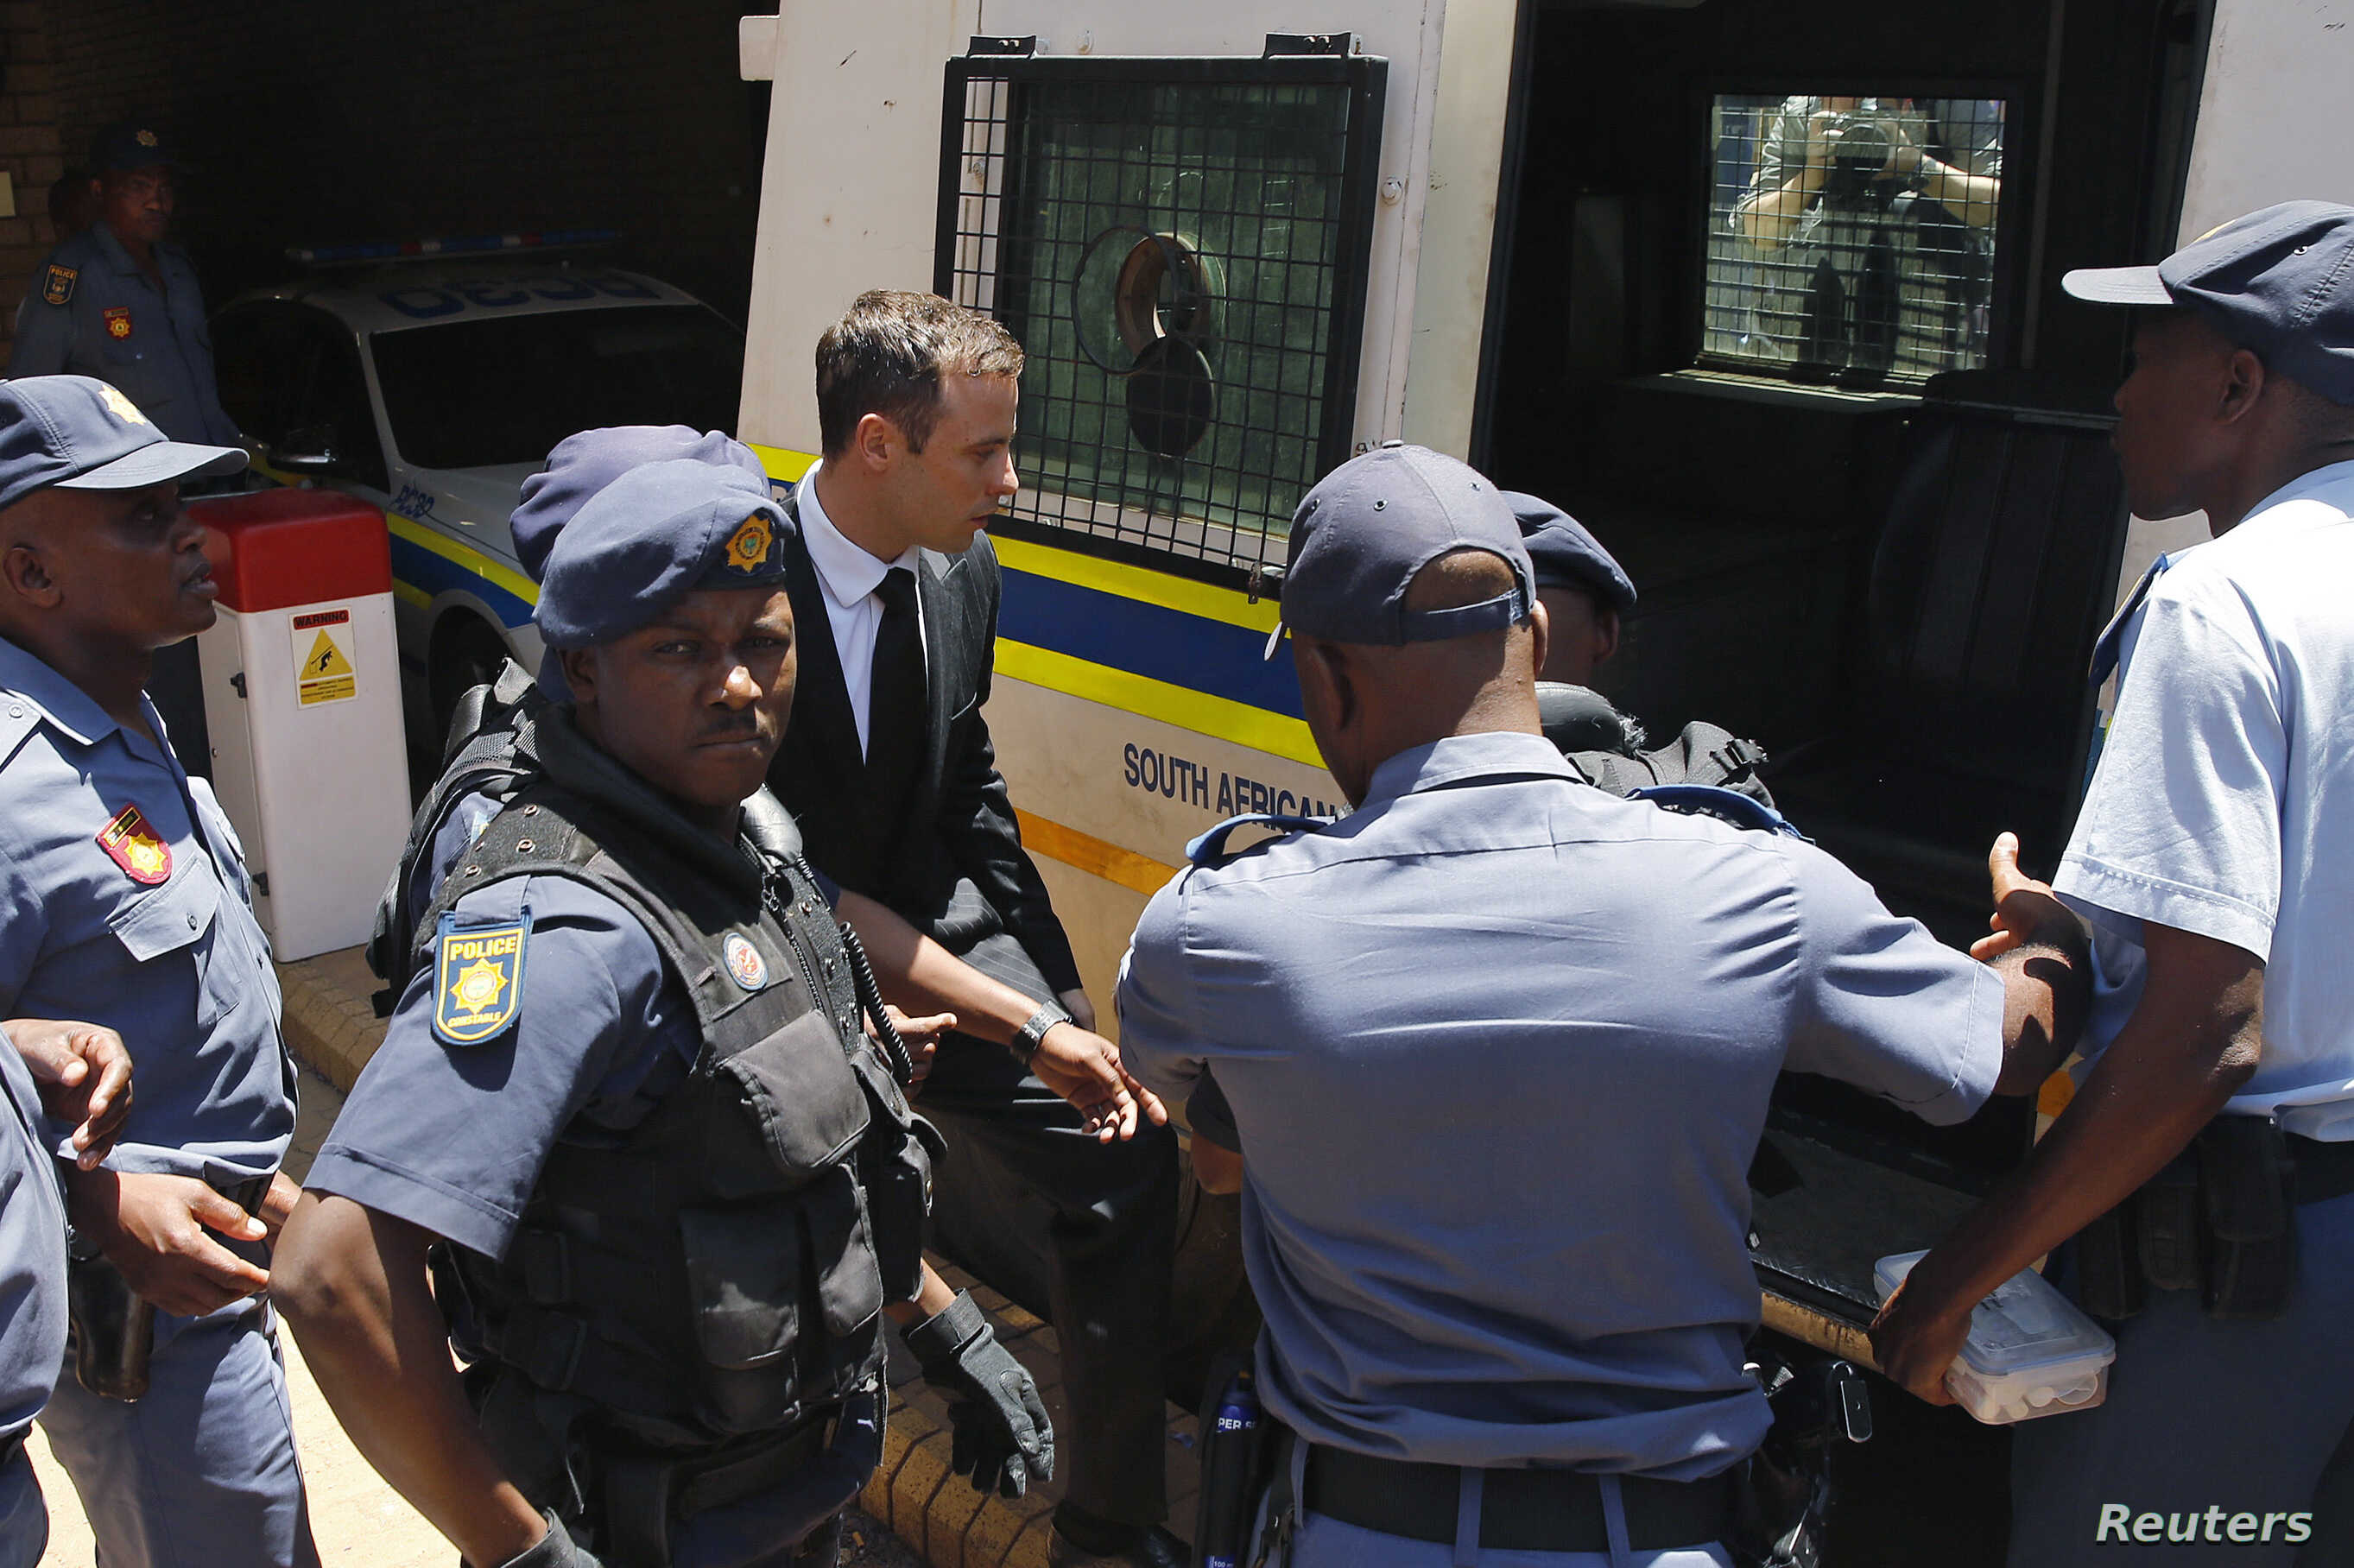 South African Olympic and Paralympic sprinter Oscar Pistorius, center, enters a police van after his sentencing at the North Gauteng High Court in Pretoria, Oct. 21, 2014.